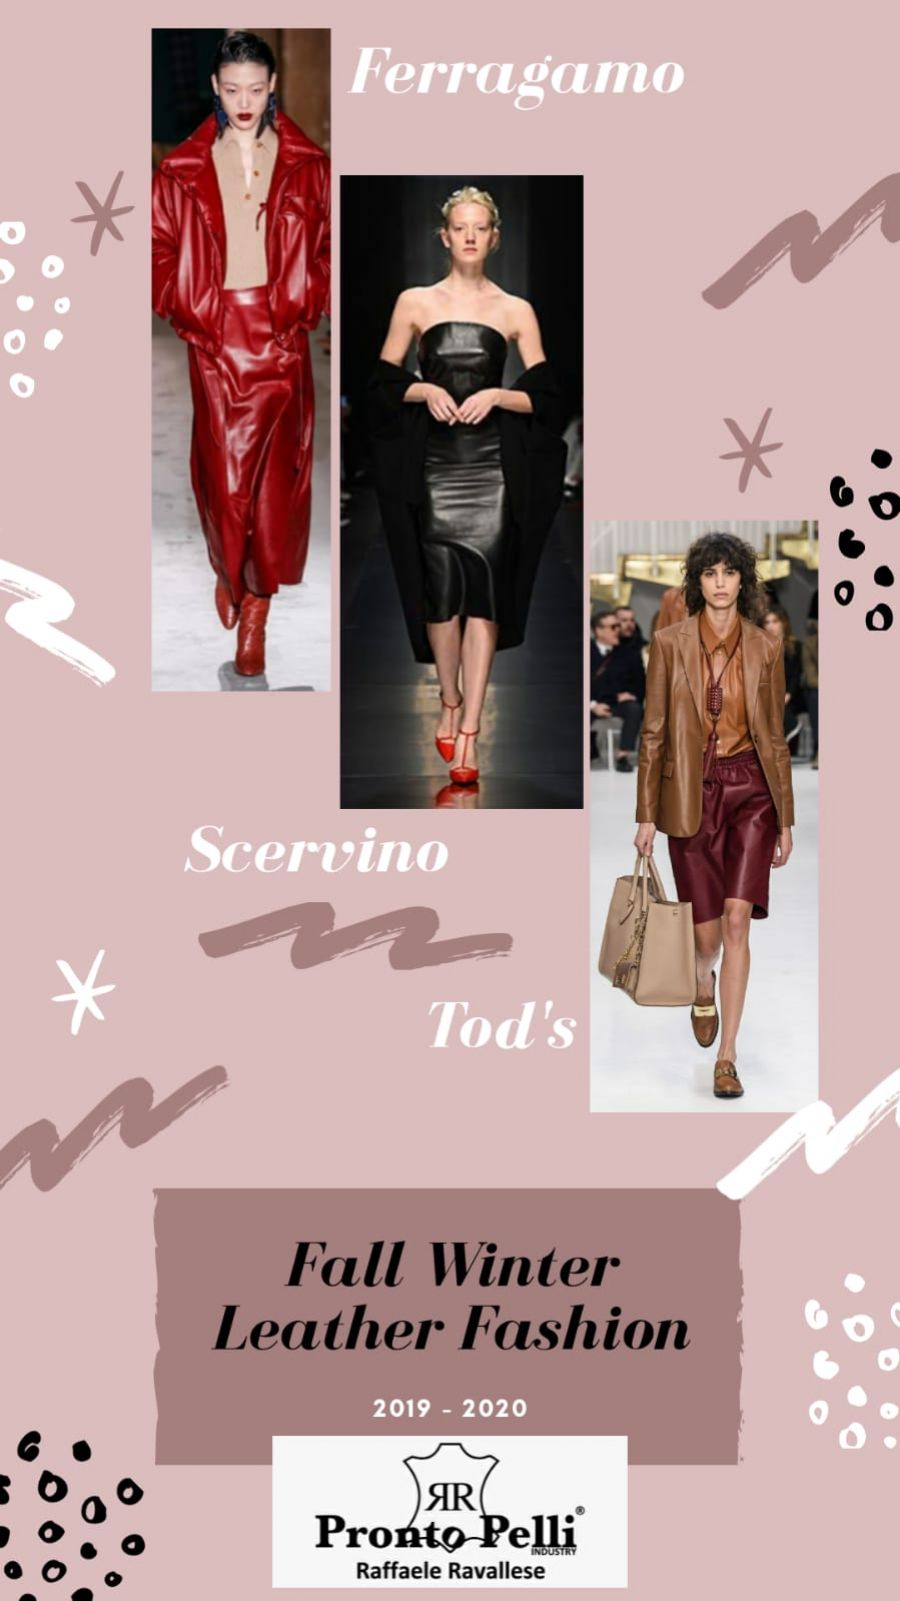 The fall winter fashion 19-20  is total leather